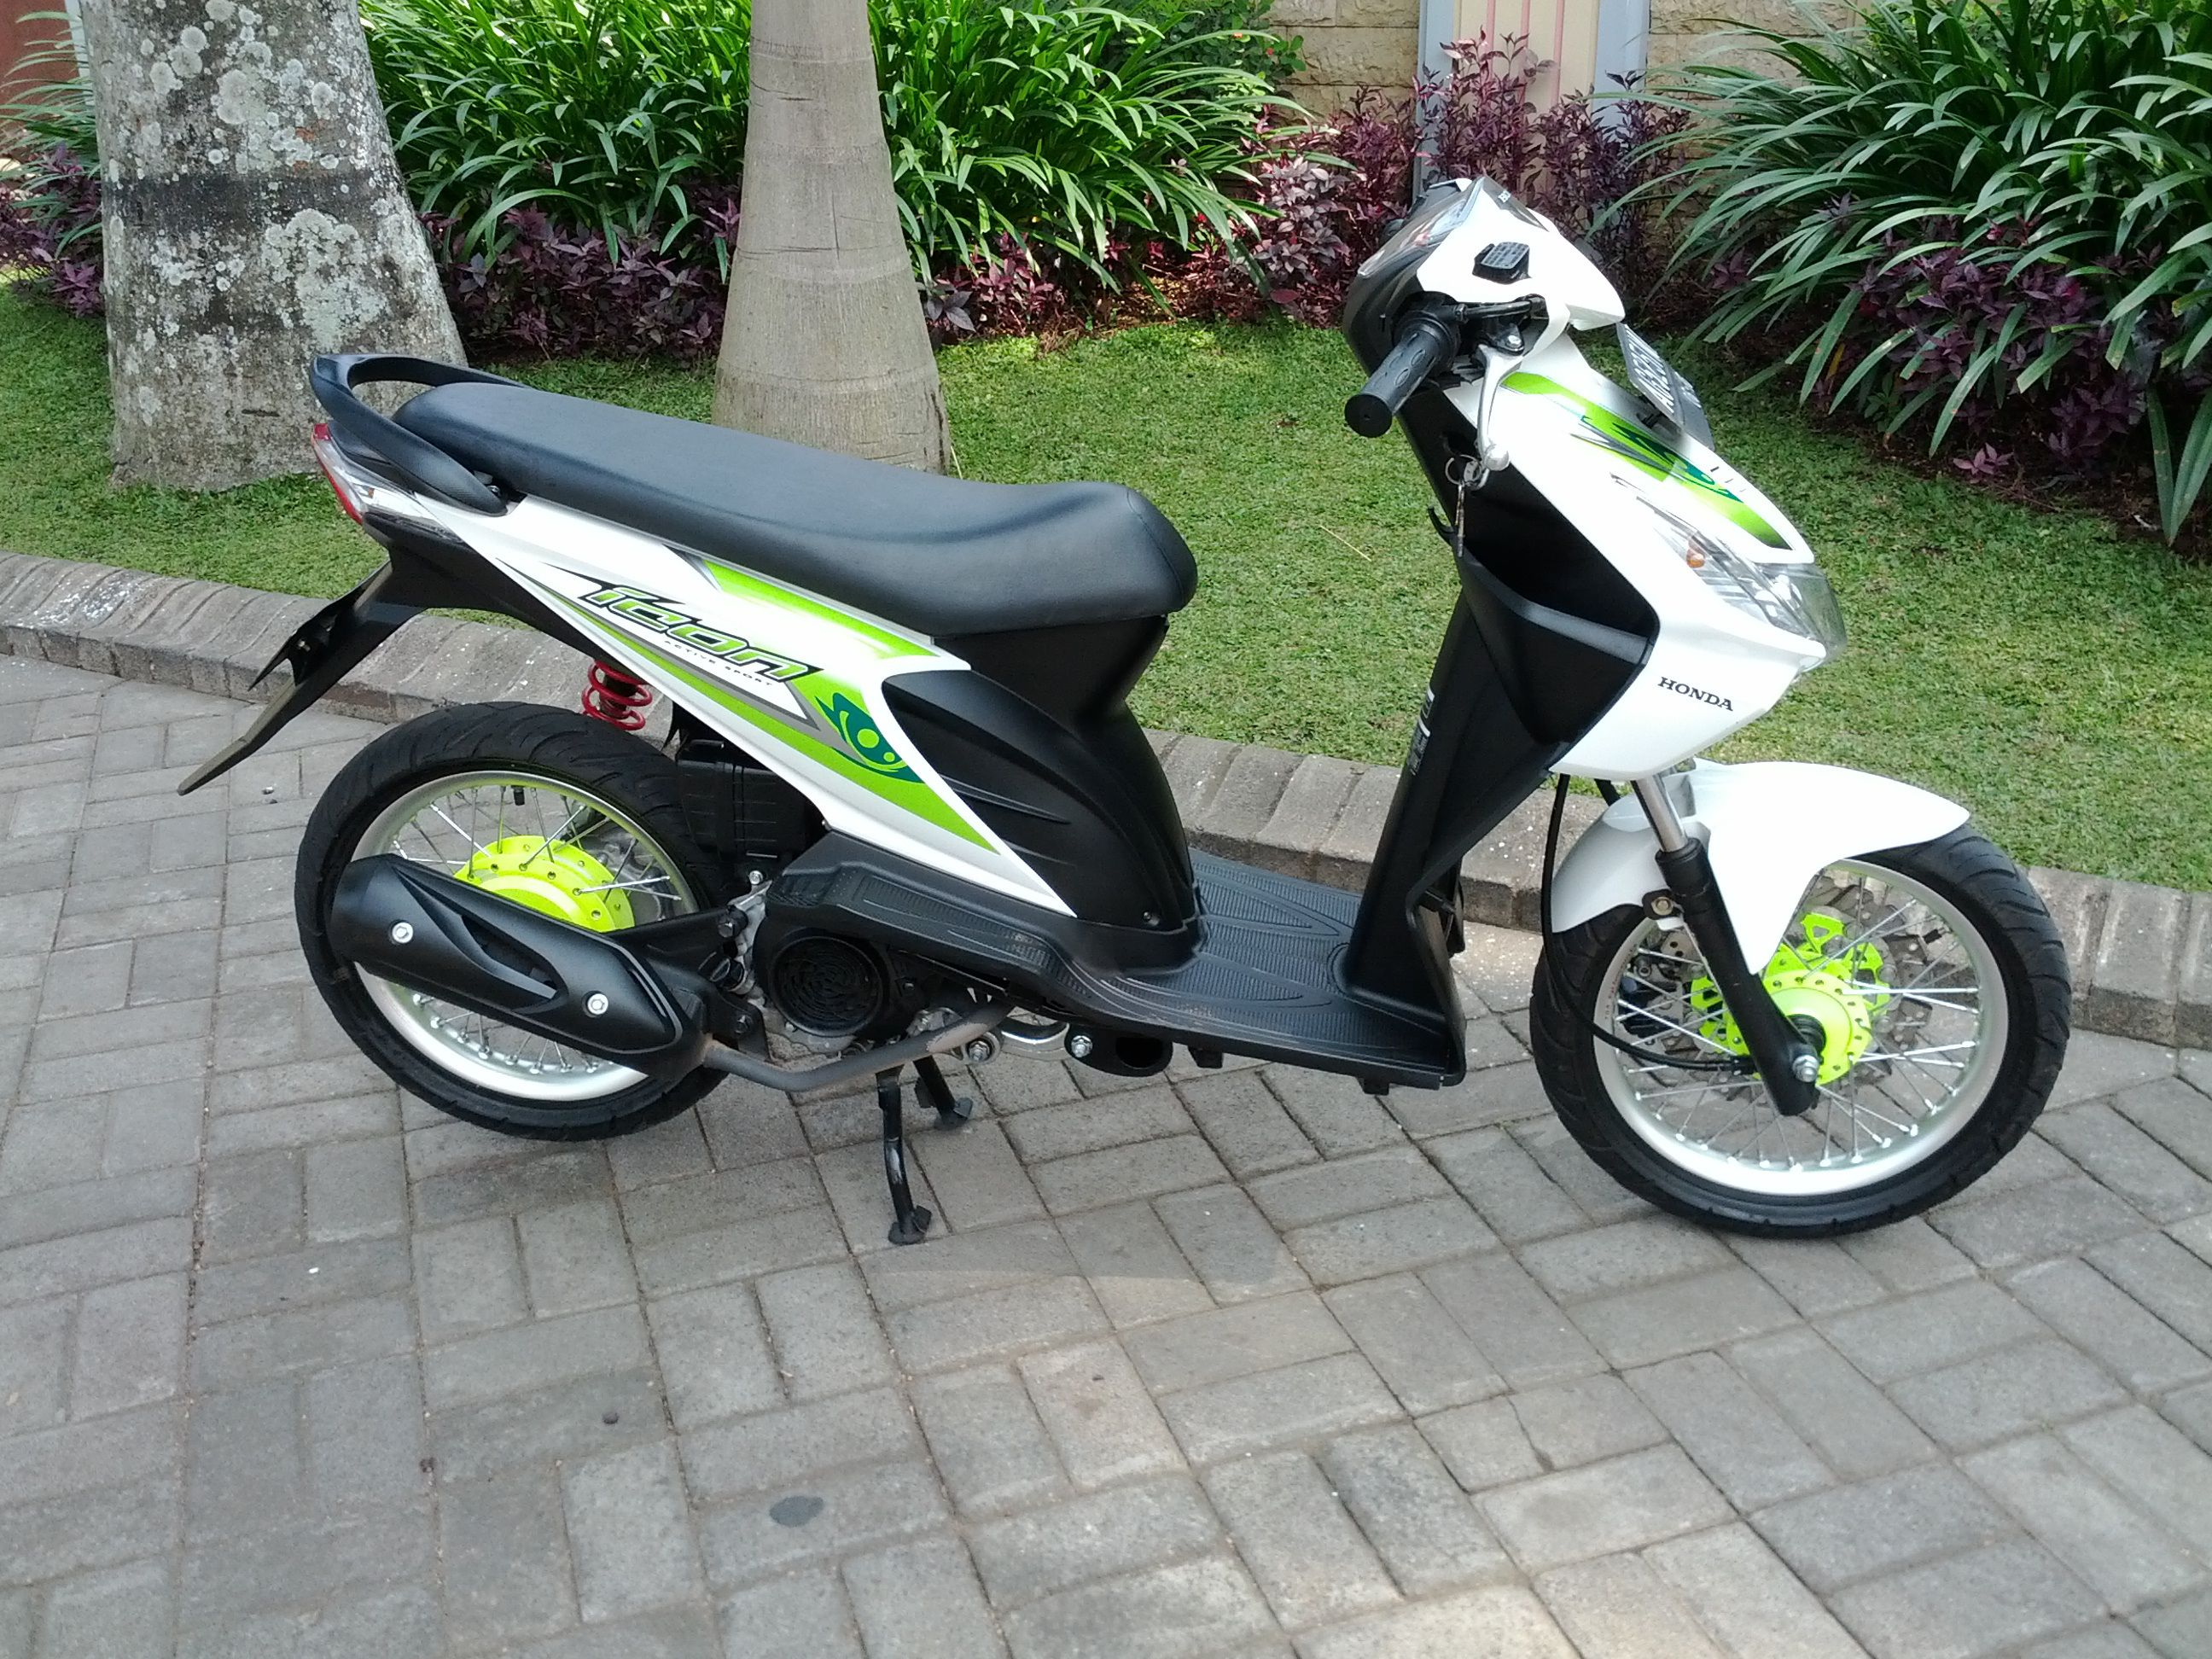 105 Modifikasi Motor Honda Beat Hijau Putih Modifikasi Motor Beat